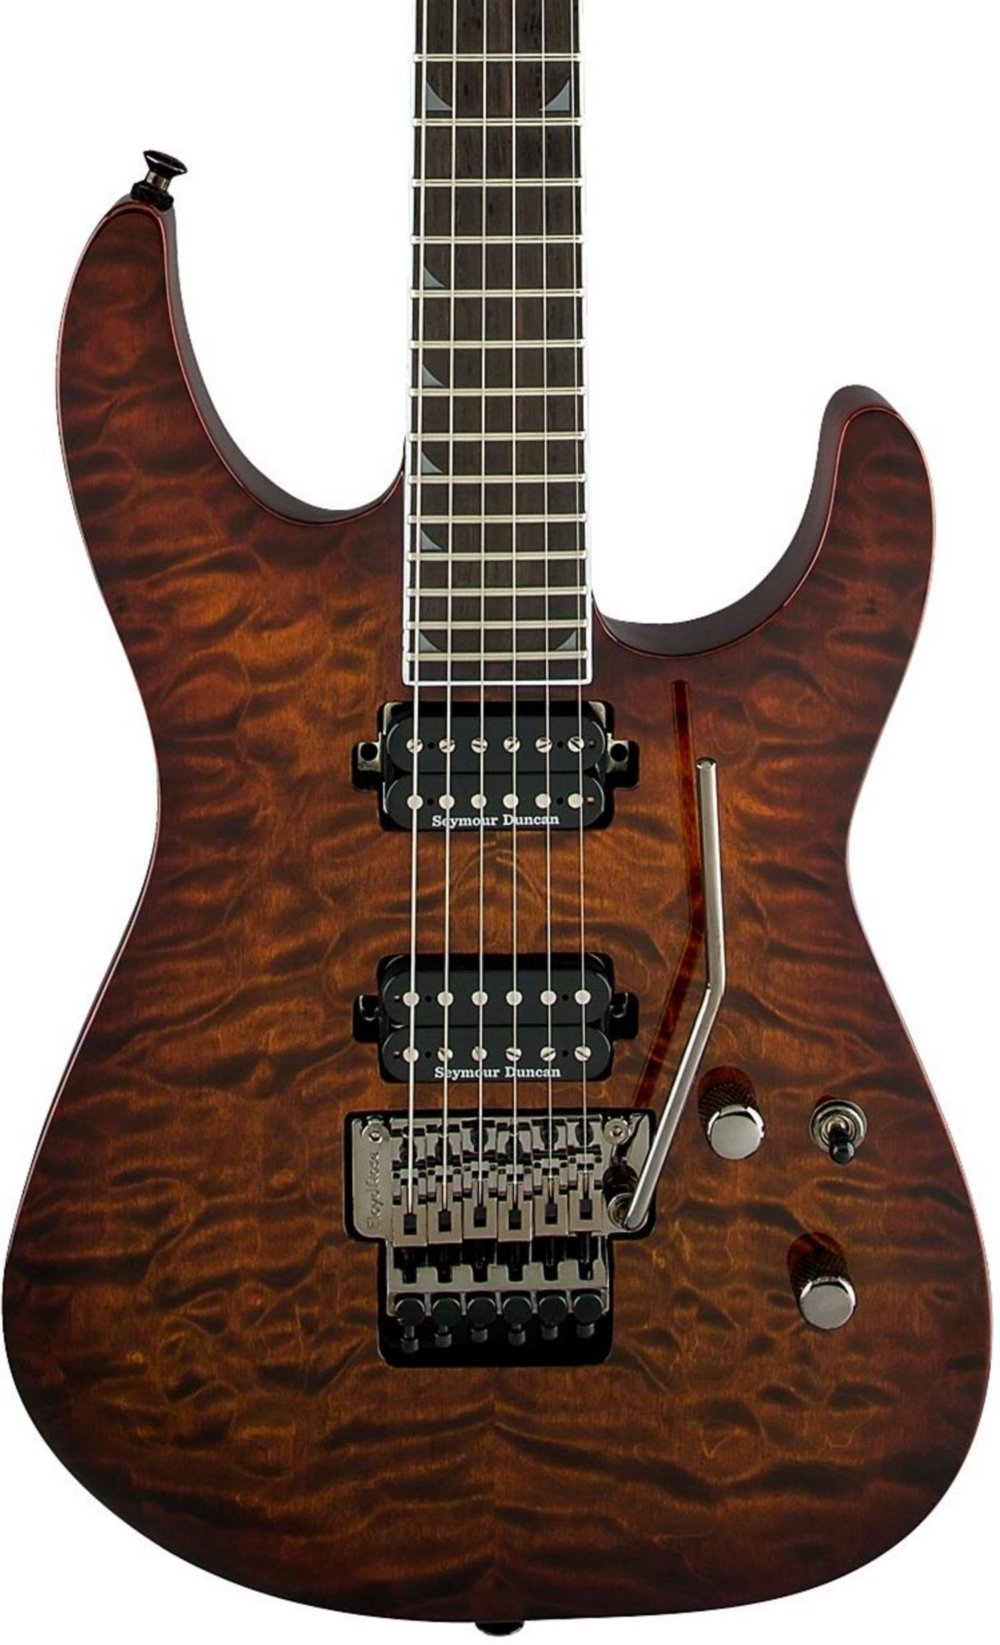 Cheap Jackson Pro Series SL2Q Soloist Electric Guitar Level 2 Transparent Root Beer 888365916491 Black Friday & Cyber Monday 2019